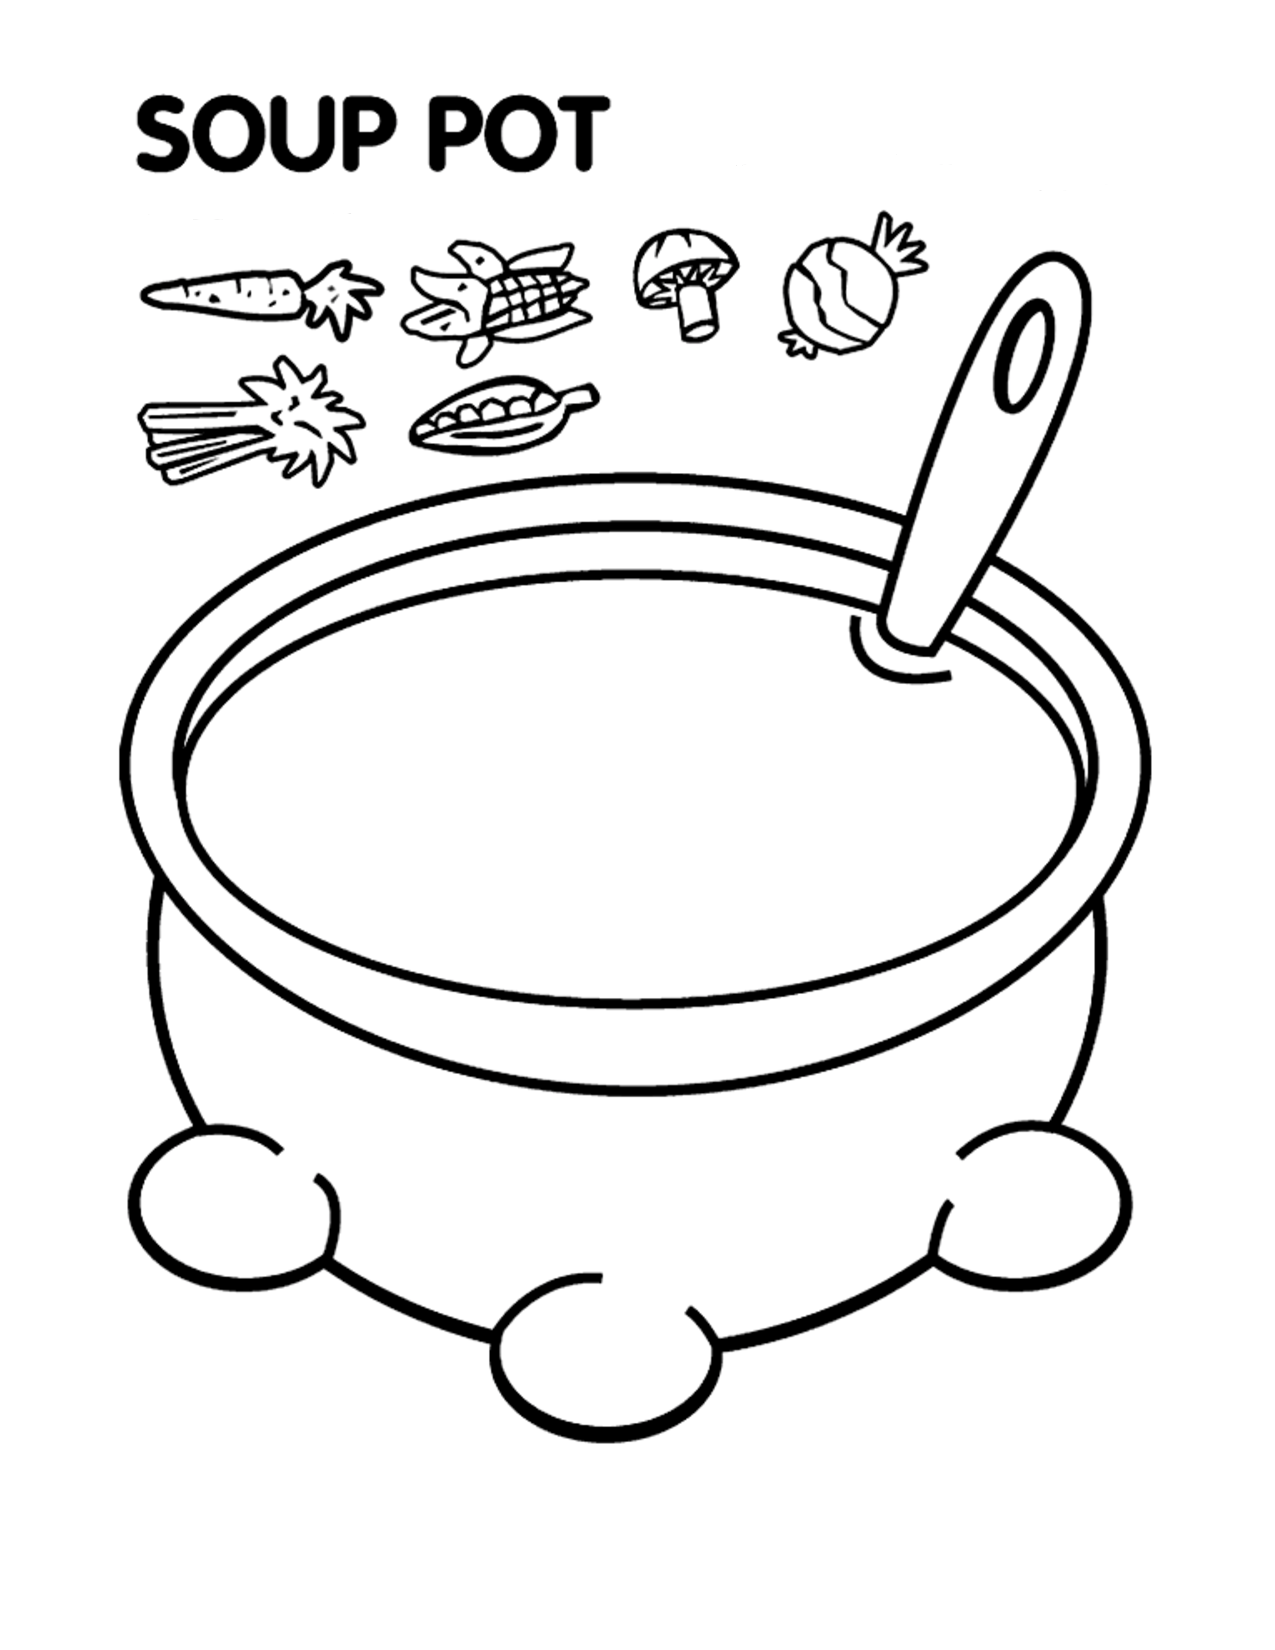 Coloring Rocks Stone Soup Preschool Food Coloring Pages